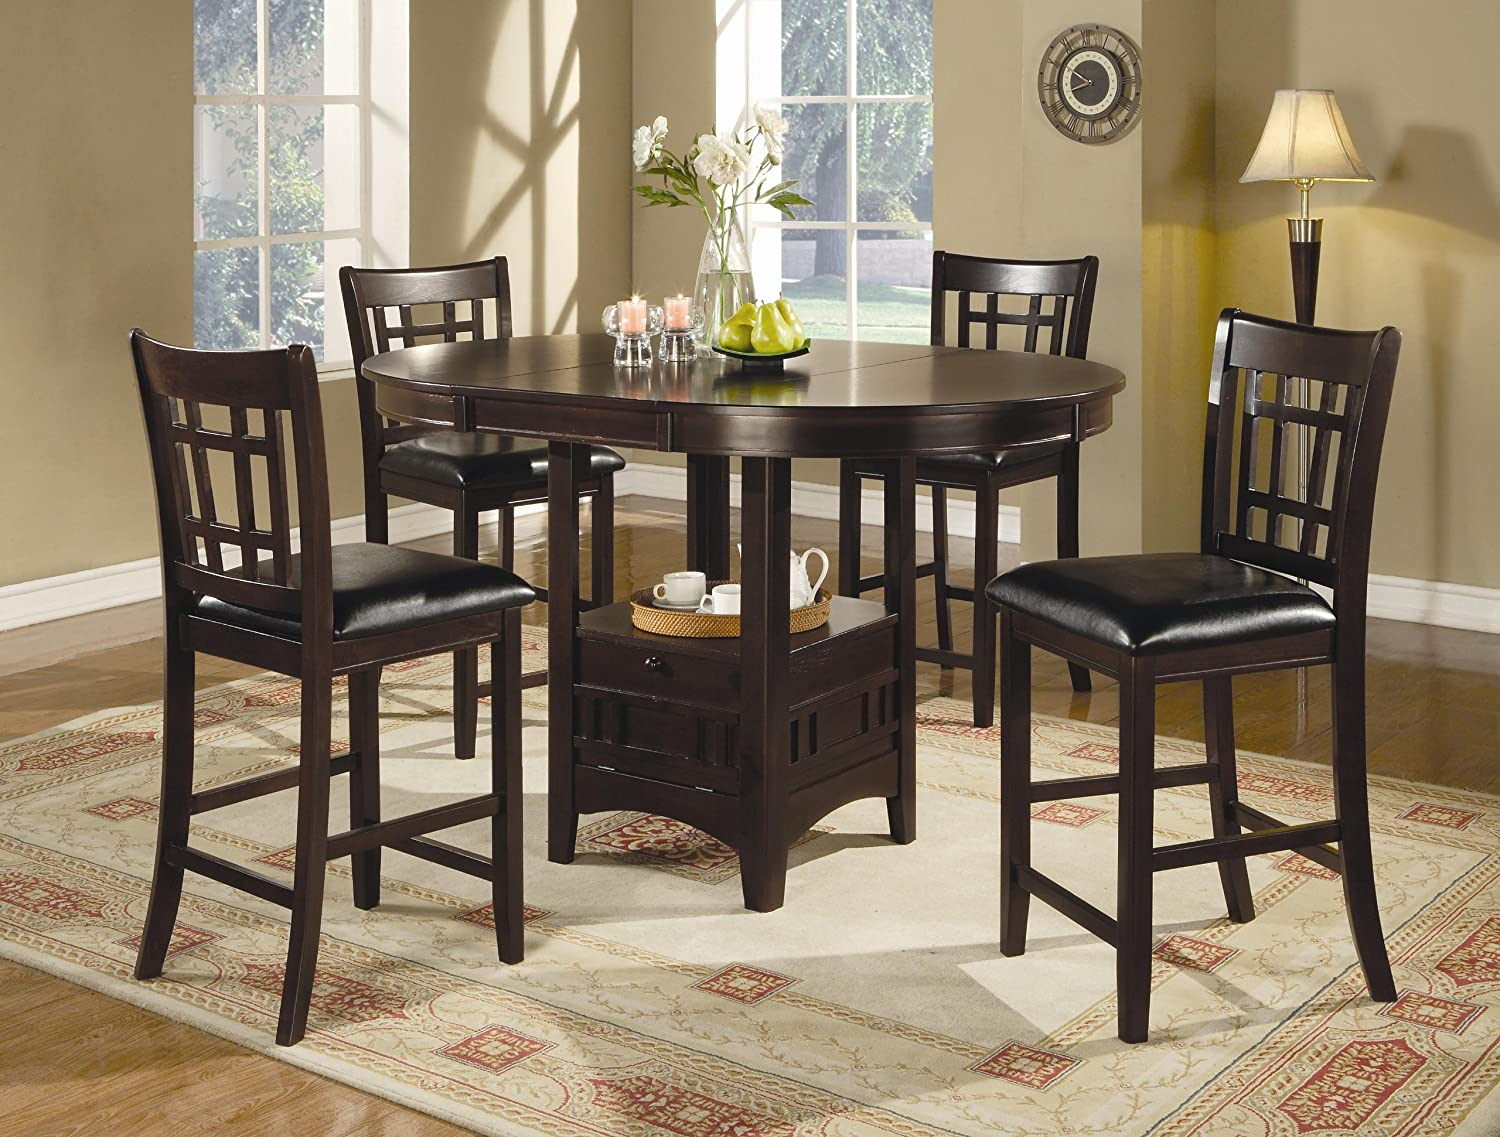 Coaster Home Furnishings Lavon 5-Piece Storage Counter Table Dining Set Espresso and Black